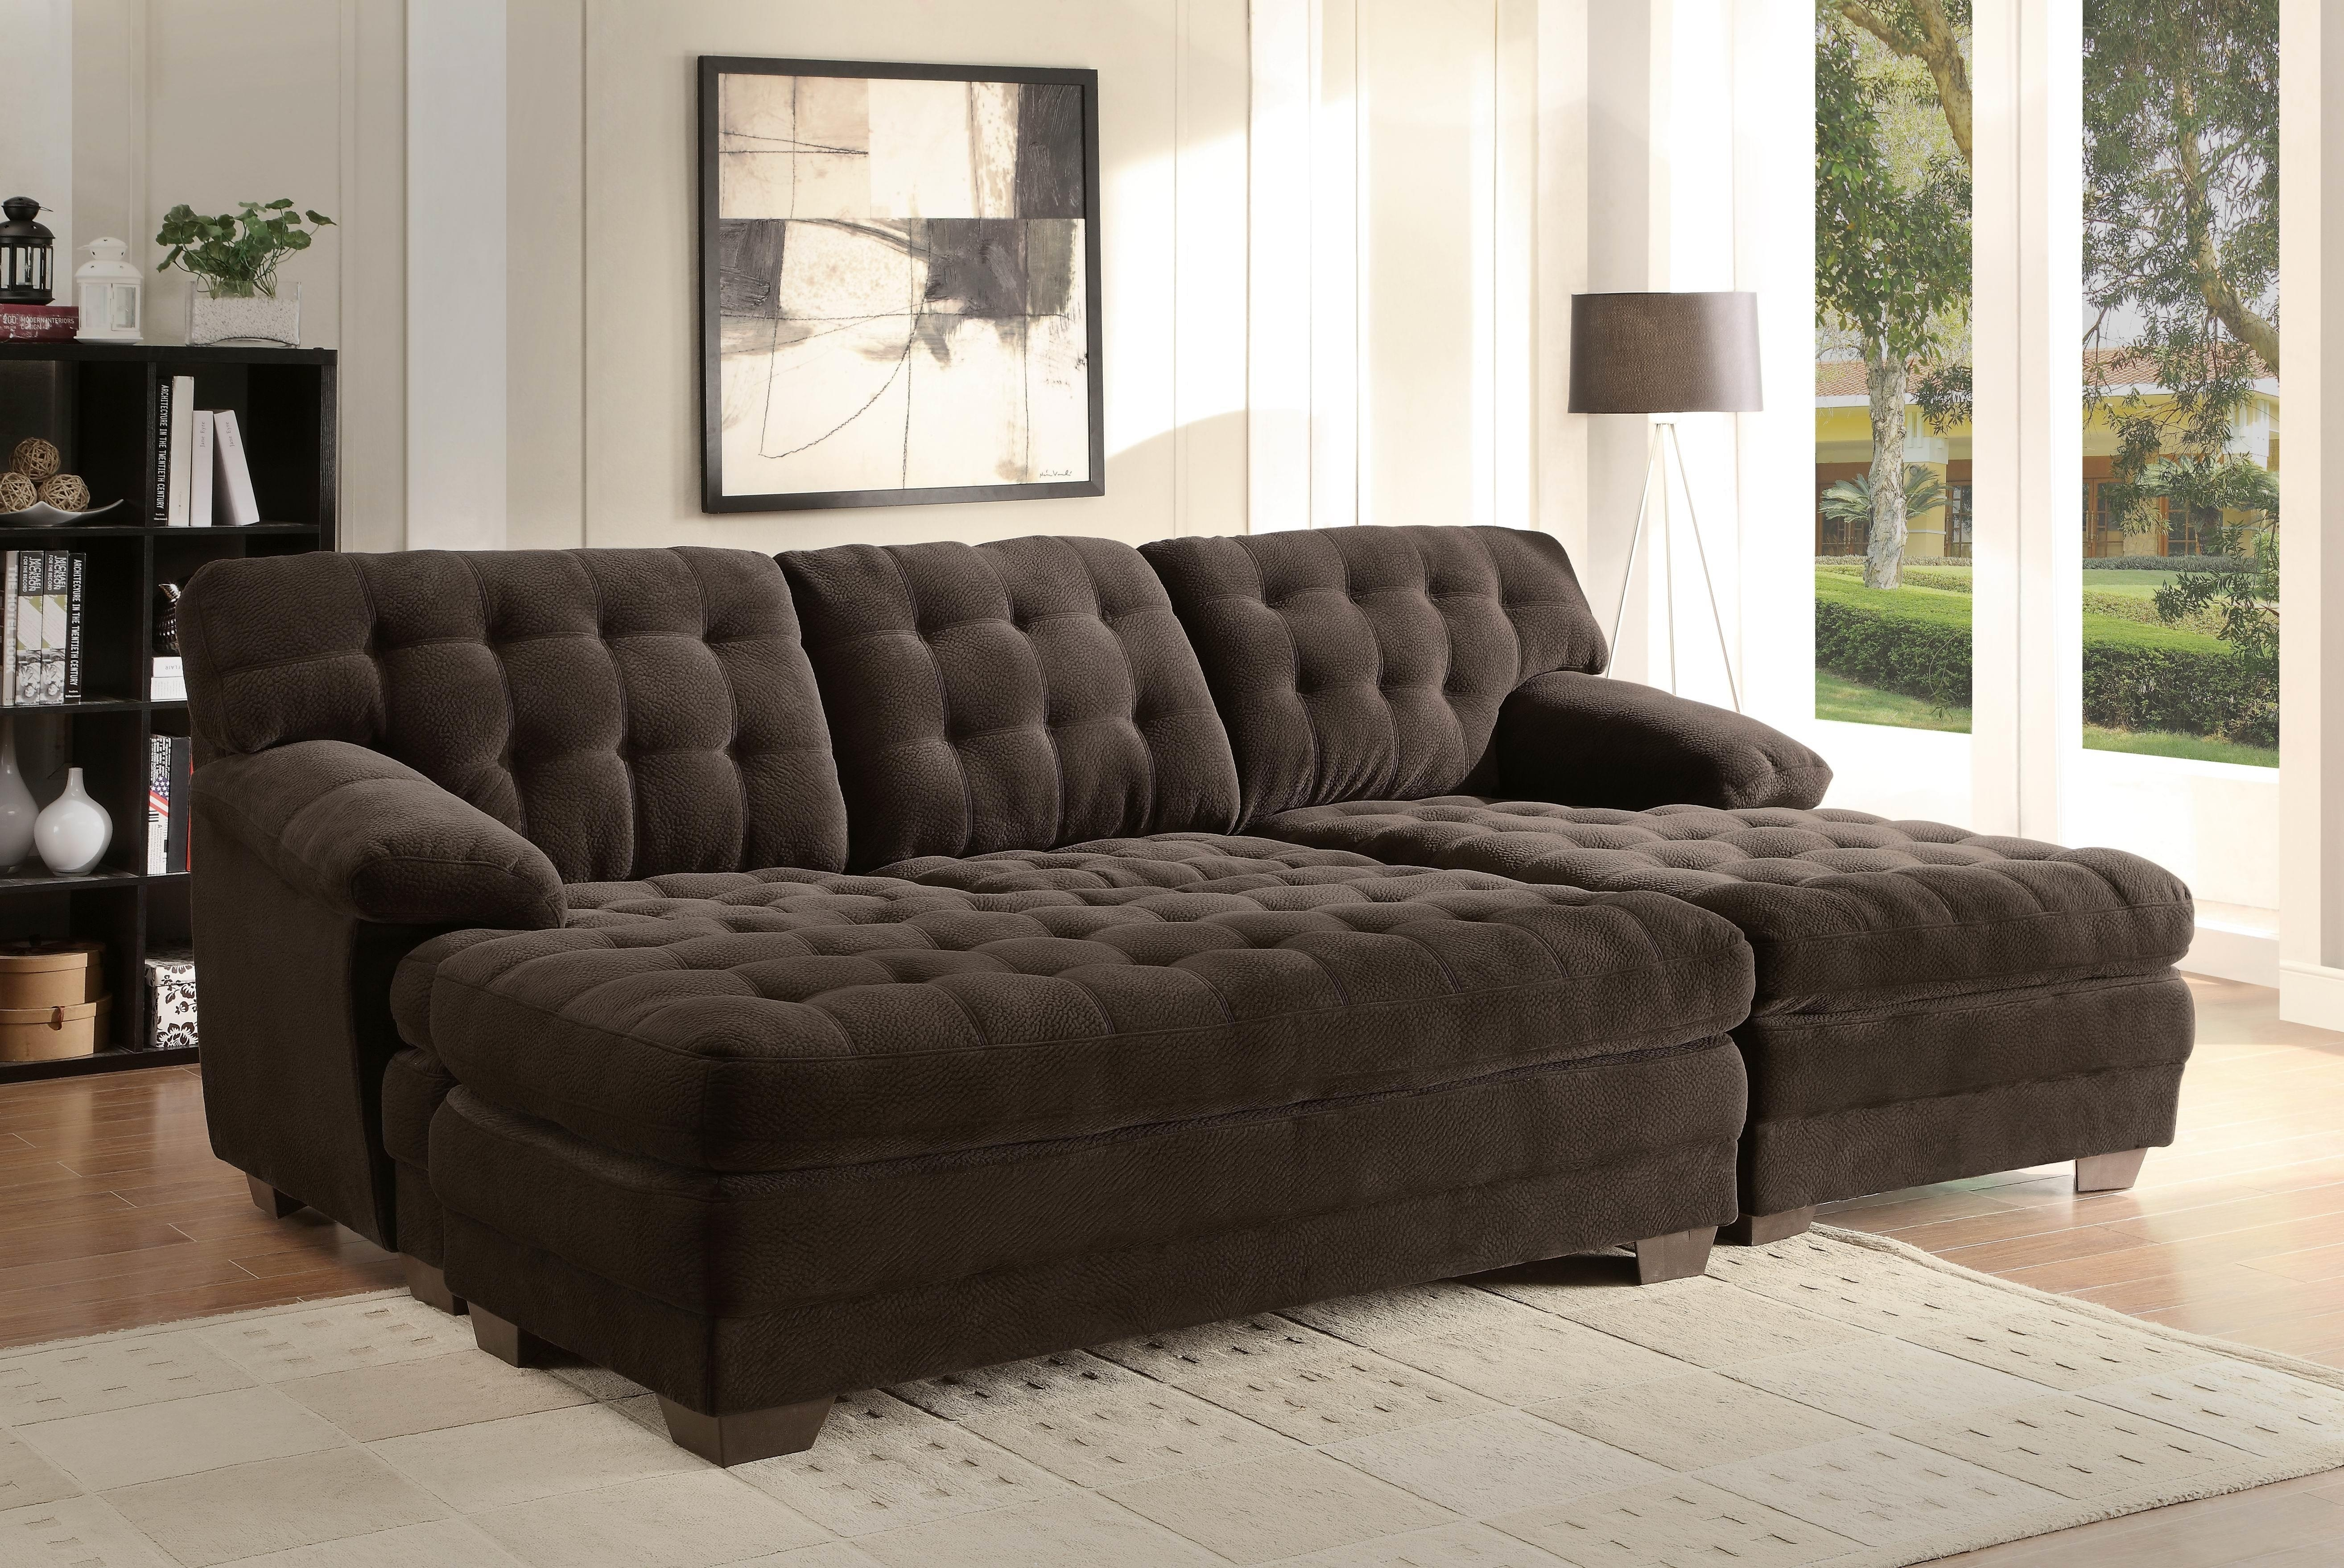 Large Sectional Sofa With Ottoman | Aifaresidency Throughout Sofas With Large Ottoman (View 7 of 10)